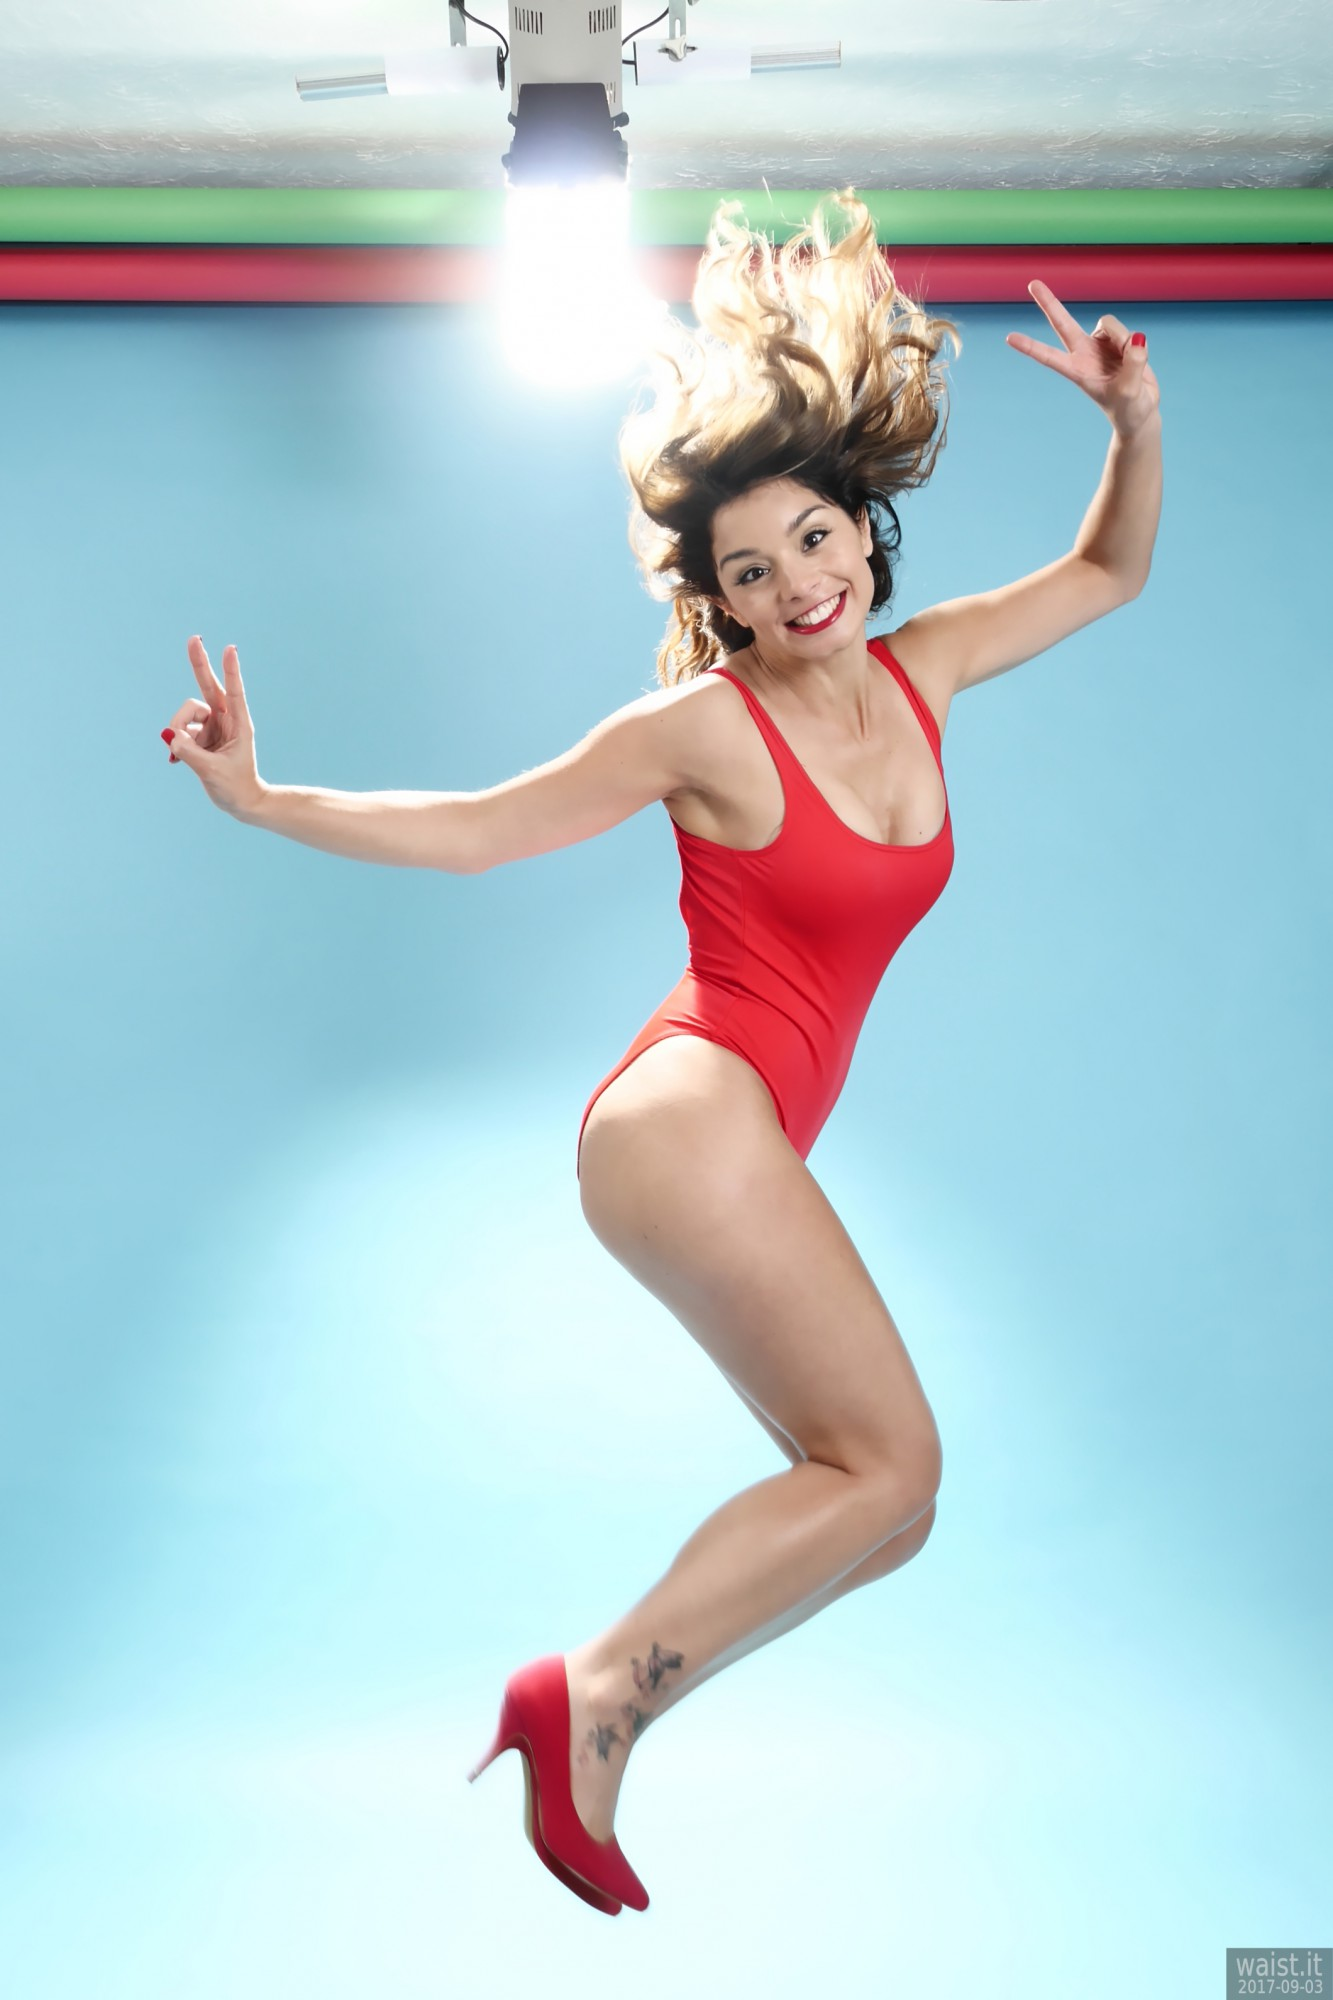 2017-09-03 Kris in red baywatch one-piece swimsuit, jumping for joy